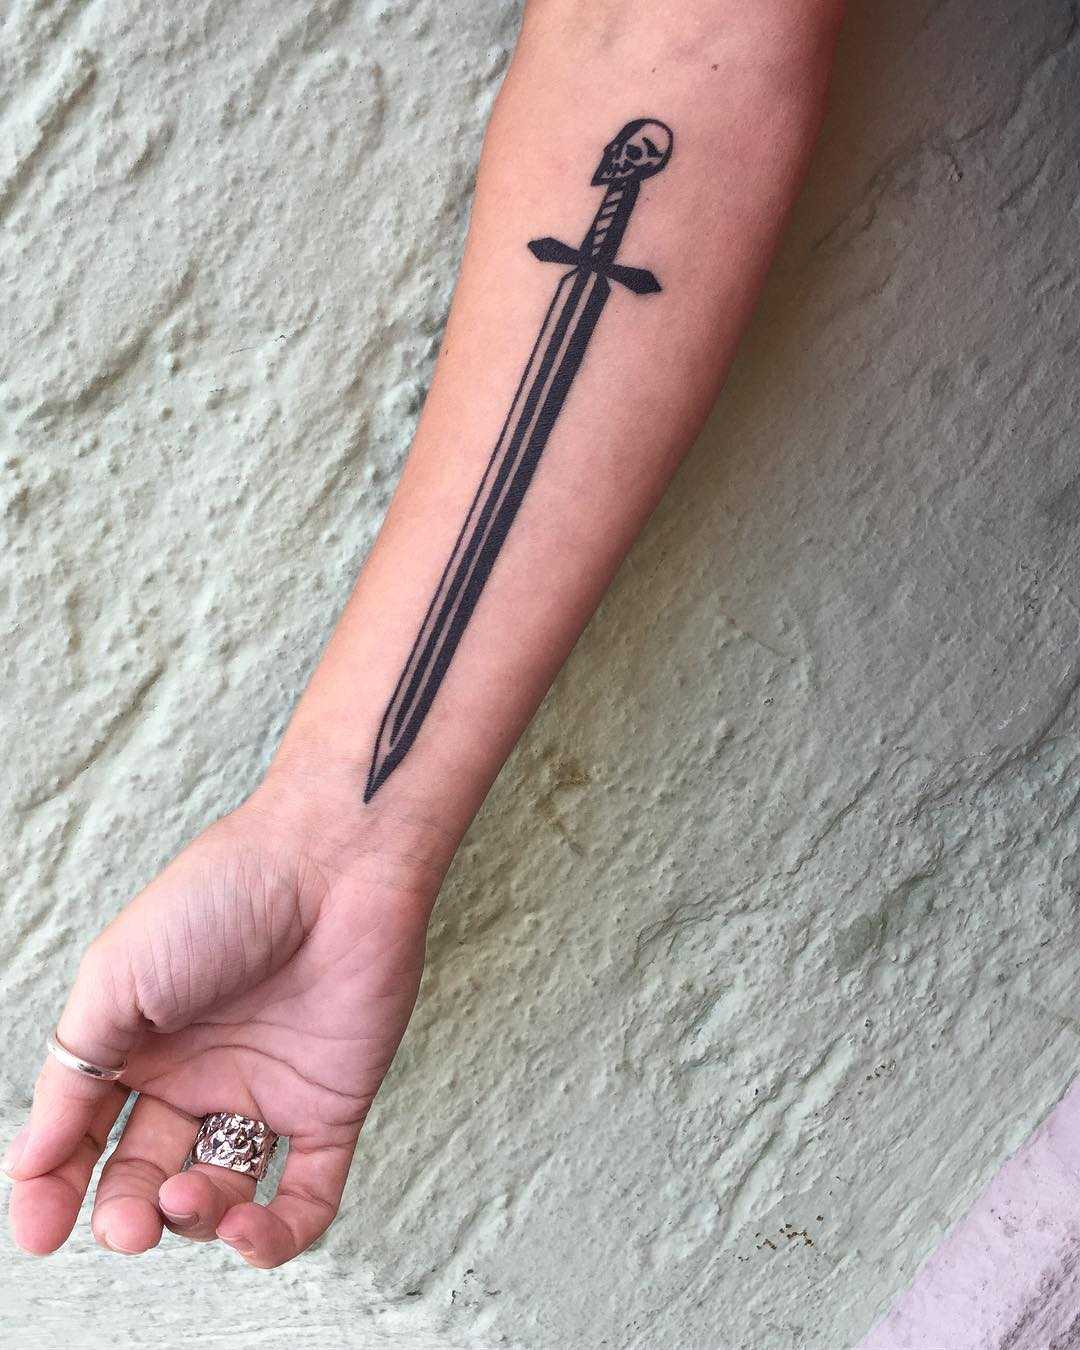 Sword by tattooist Miedoalvacio